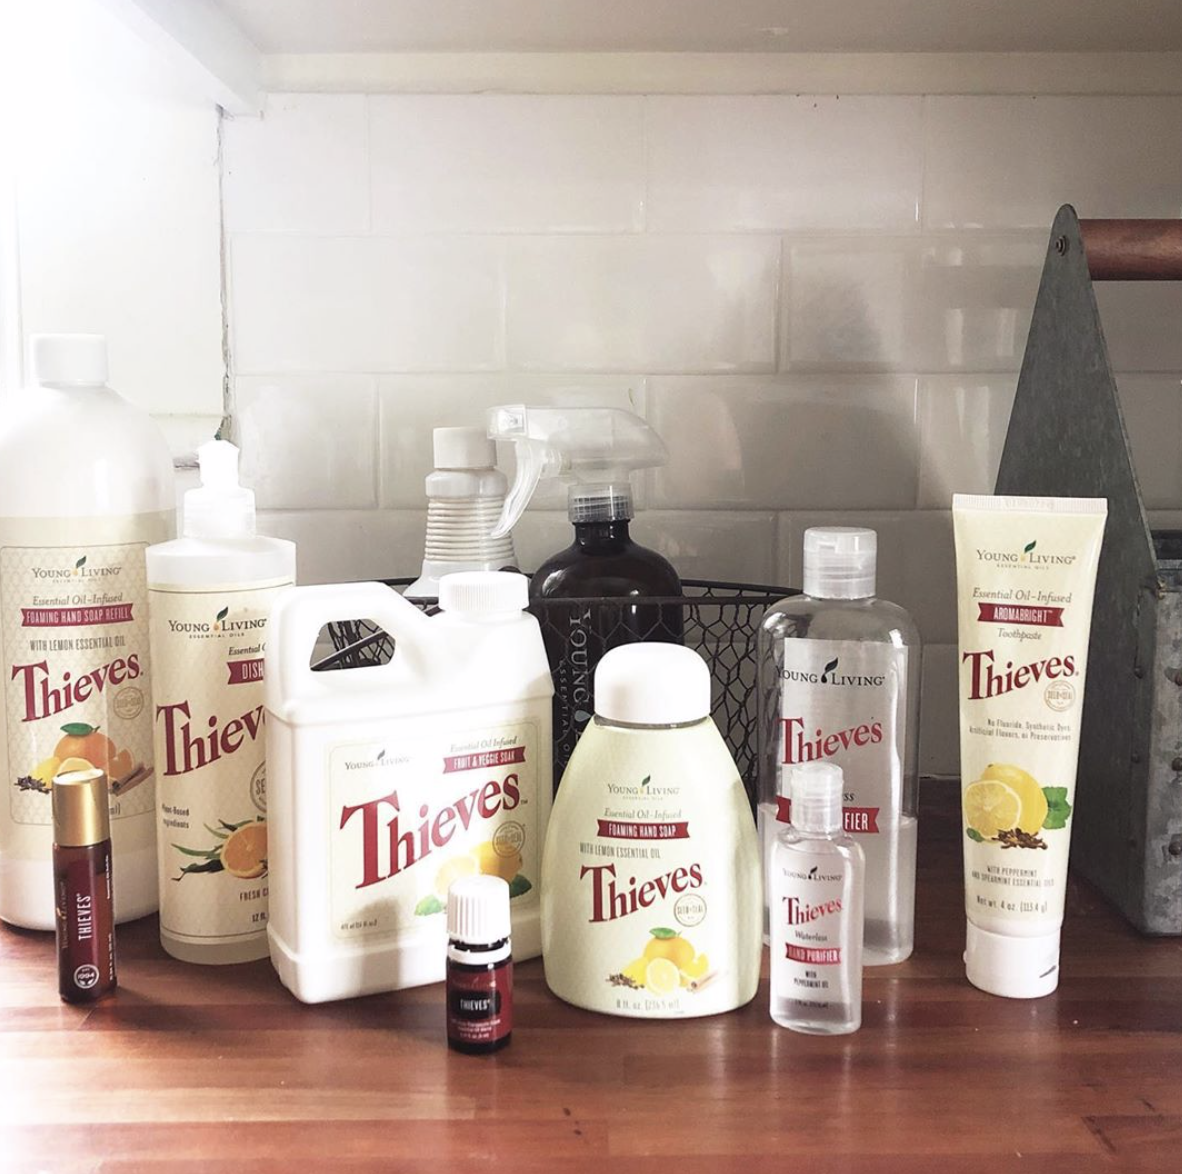 All of our cleaning products are infused with essential oils and have the power to disinfect naturally.